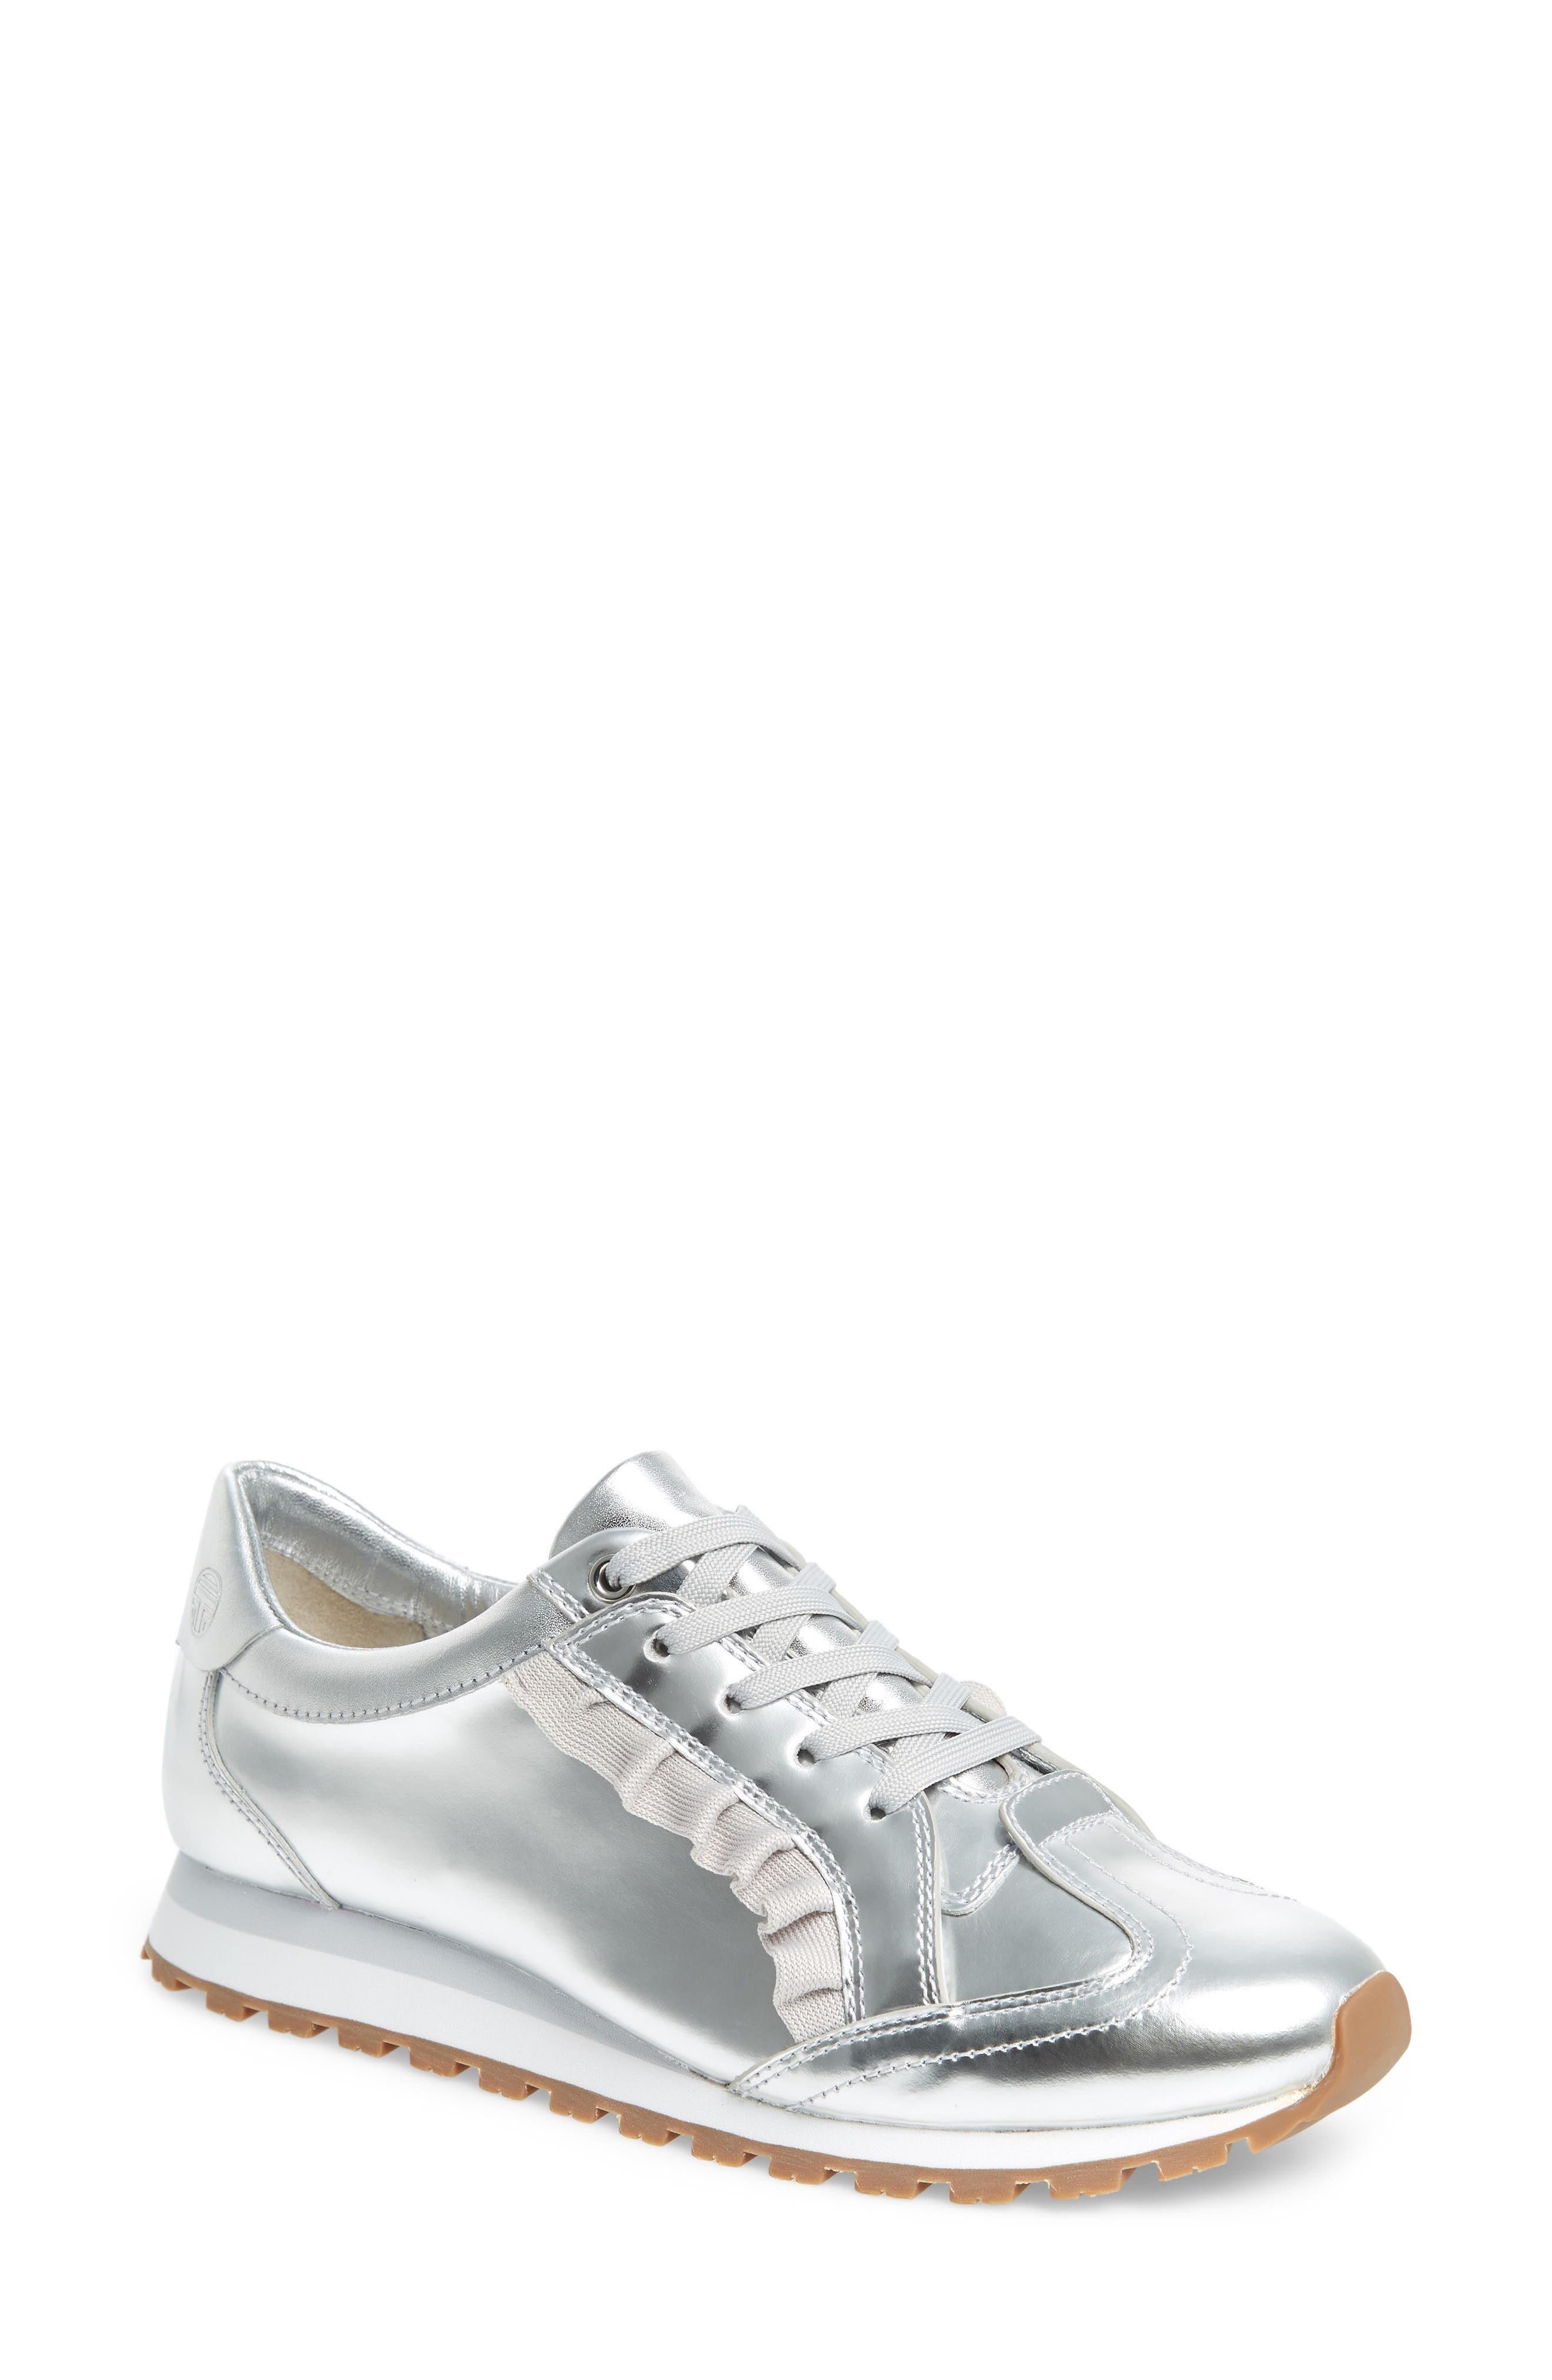 TORY SPORT Ruffle Sneaker, Main, color, SILVER/ GRAY